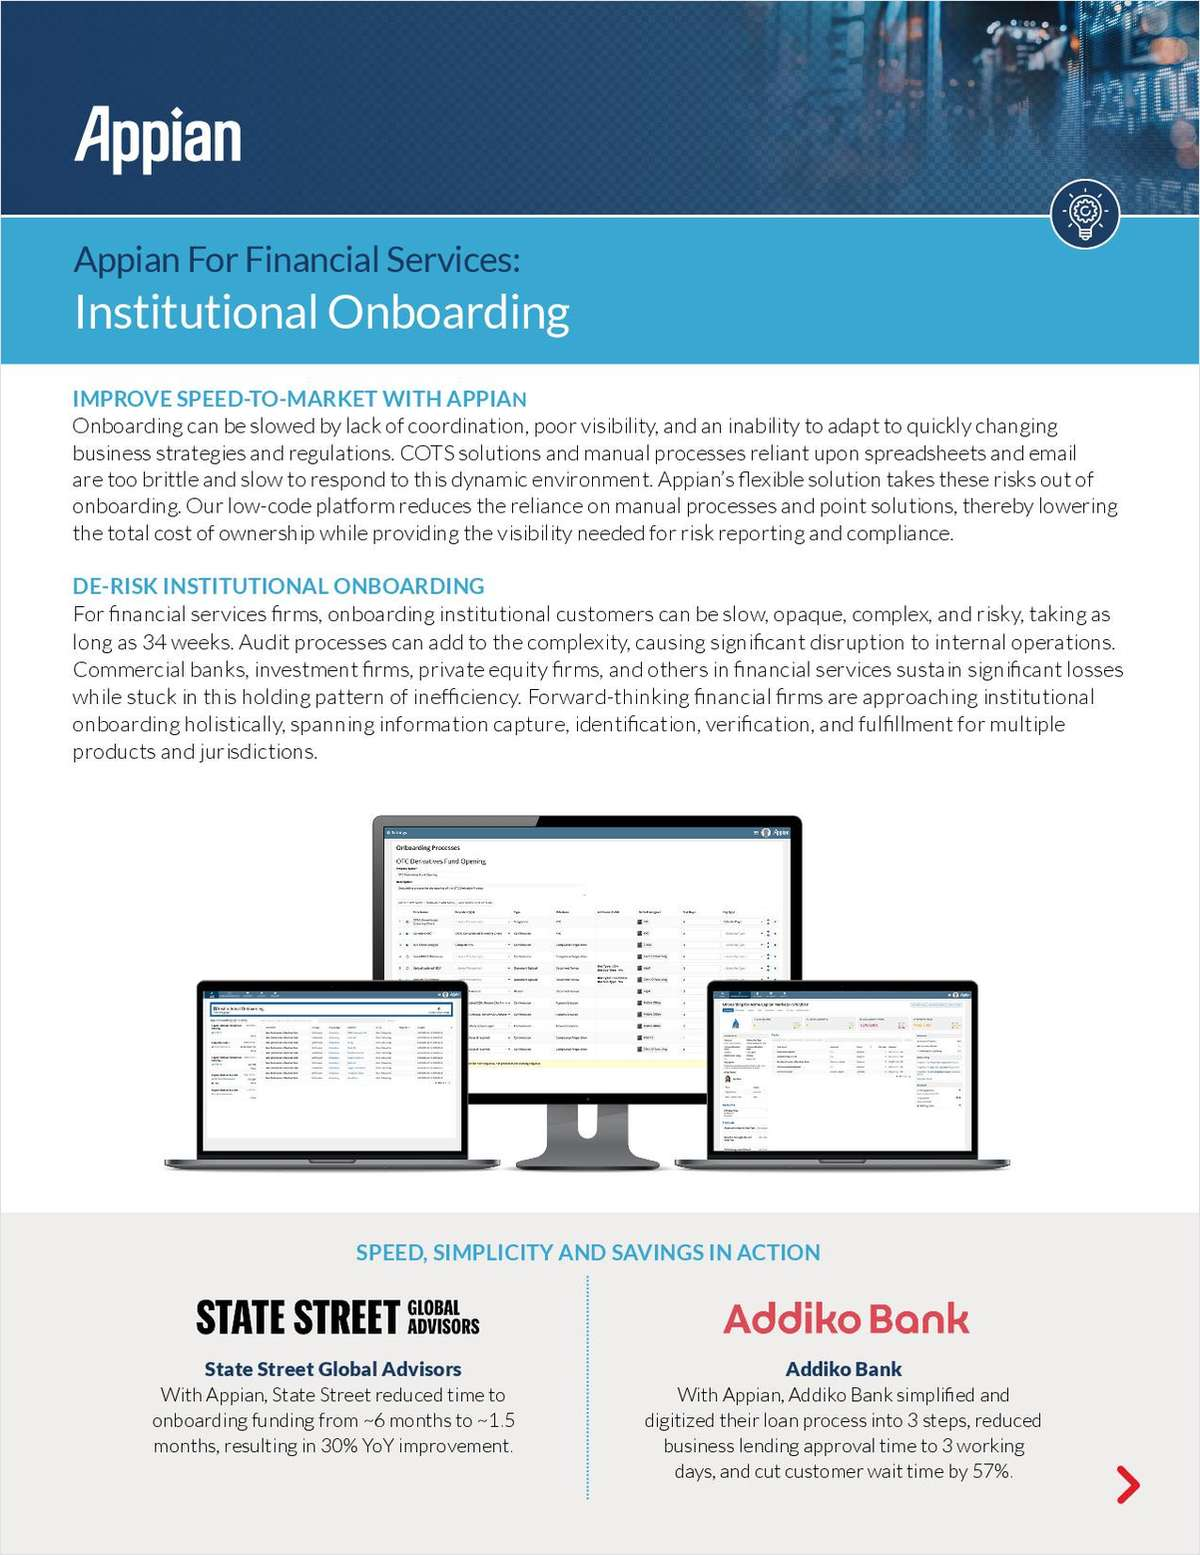 Appian for Financial Services: Institutional Onboarding